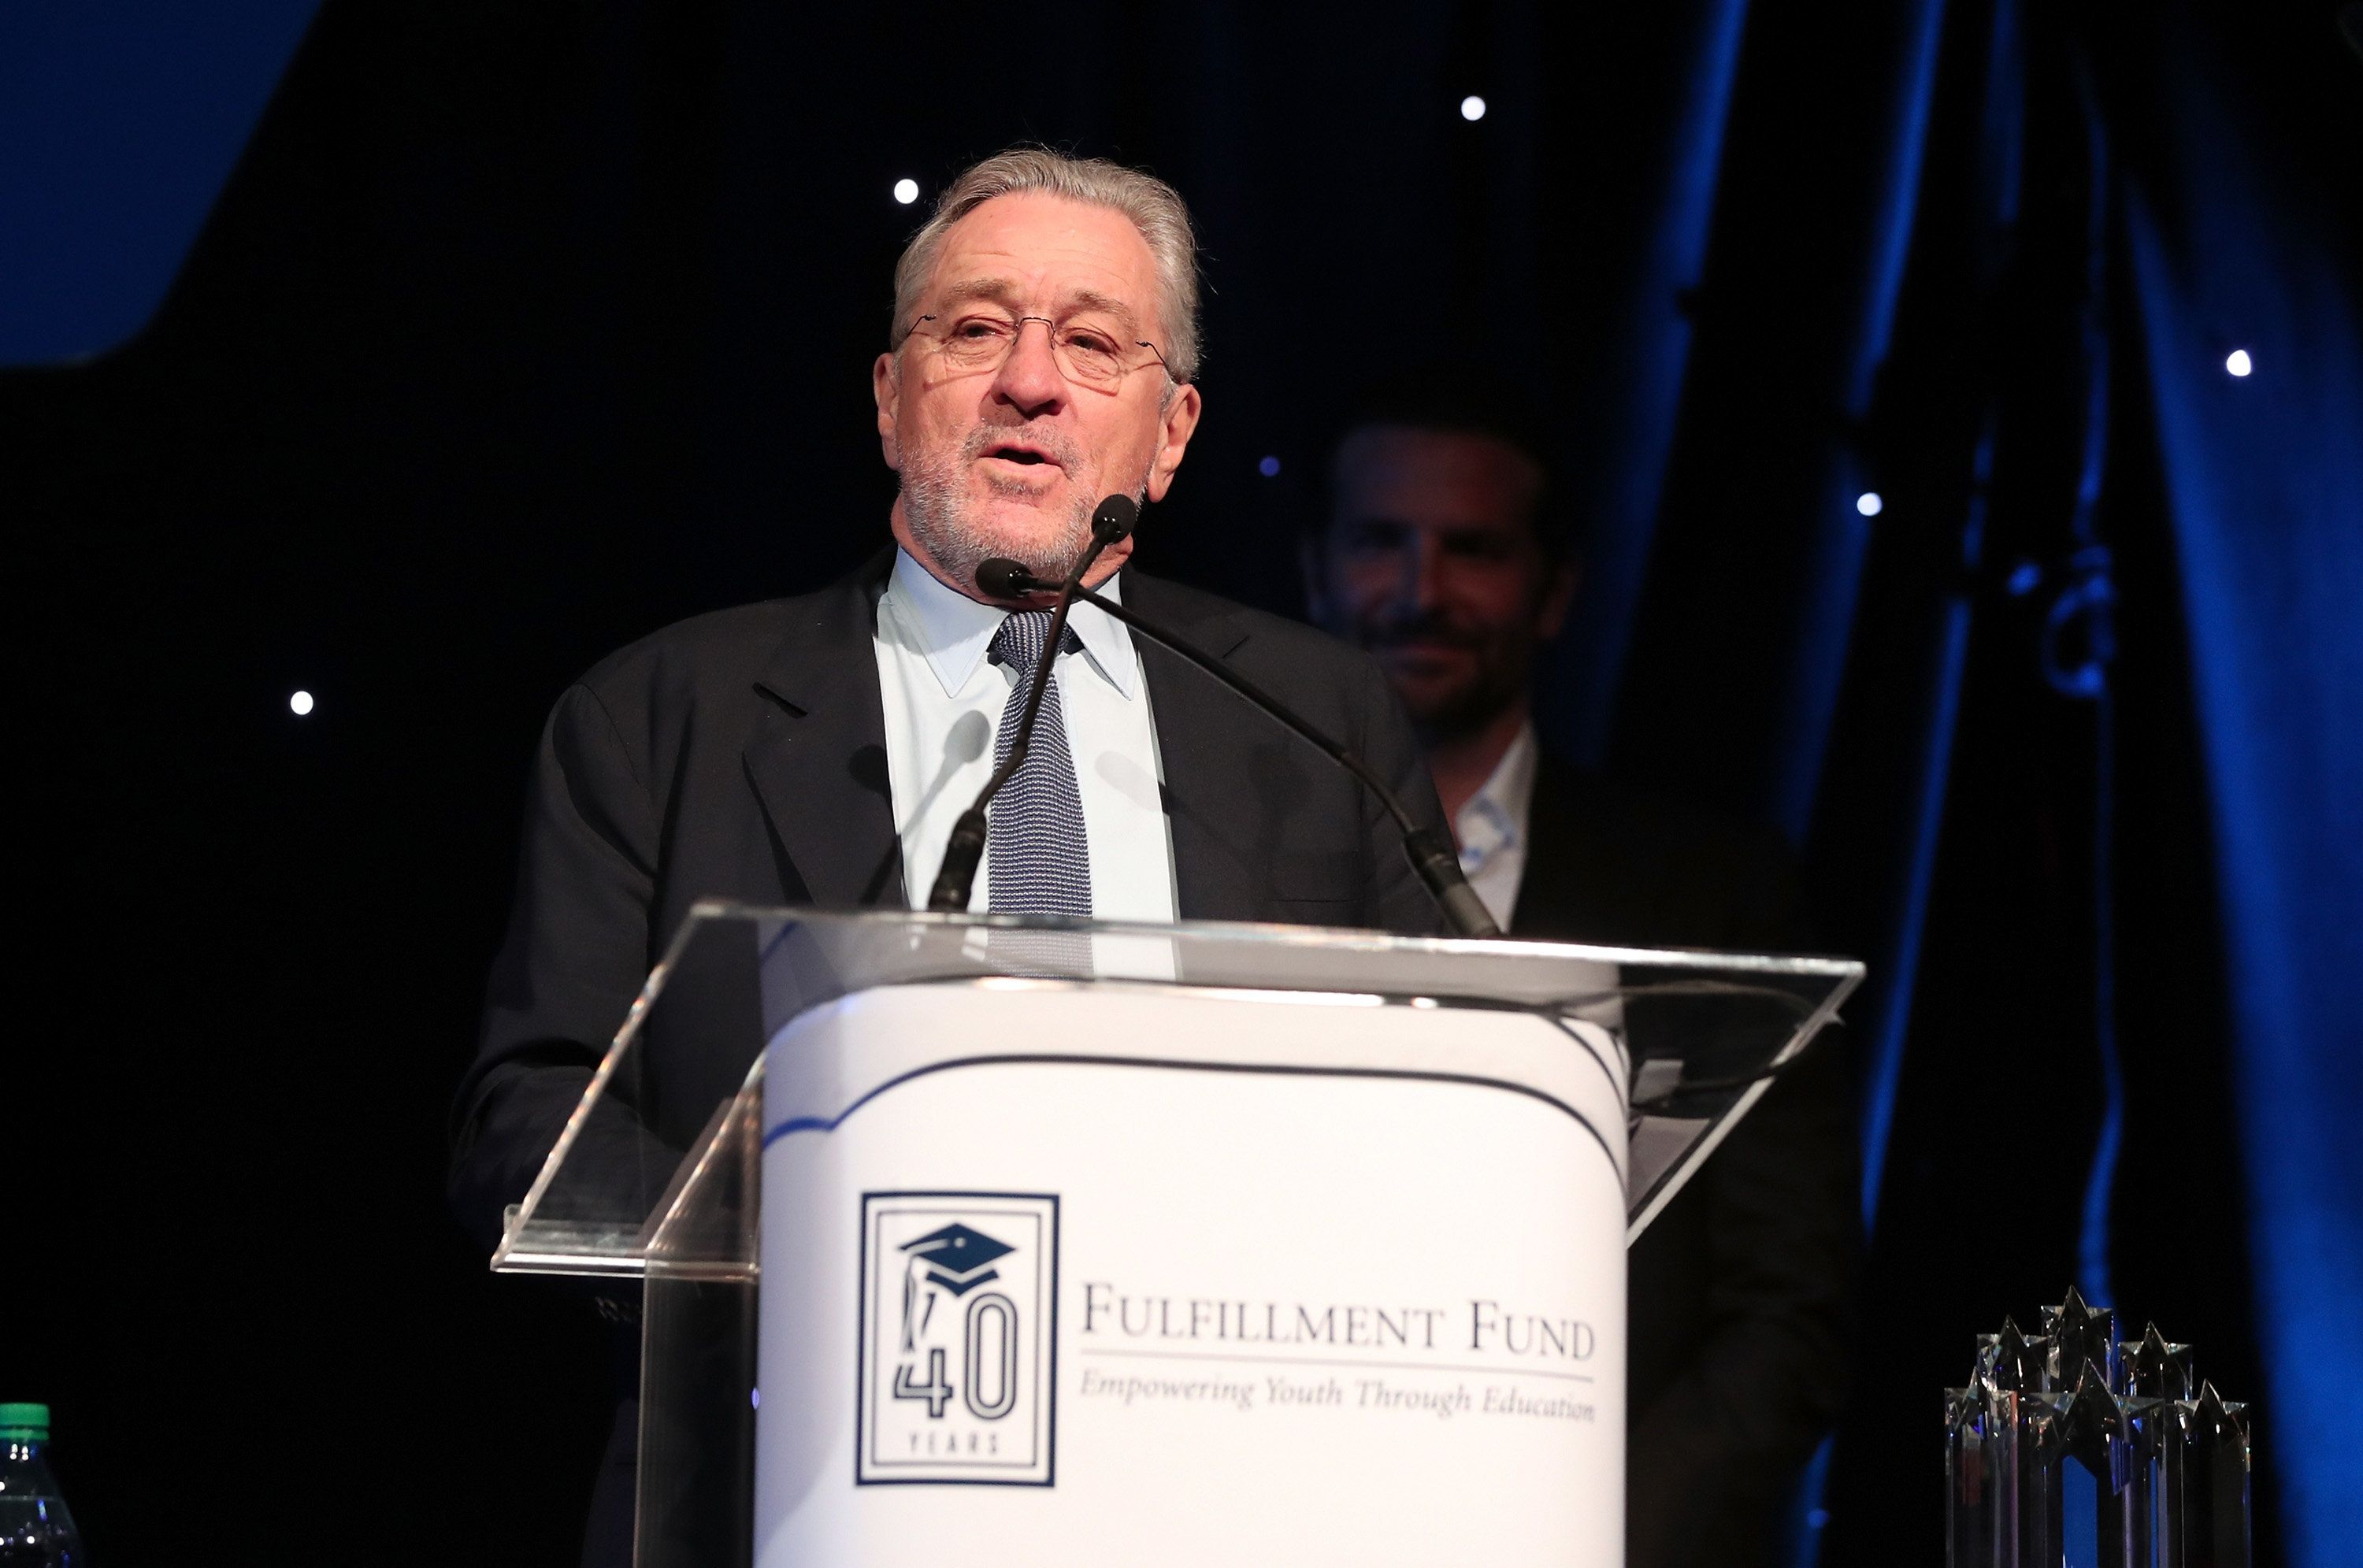 HOLLYWOOD, CA - MARCH 13:  Robert De Niro speaks onstage during A Legacy Of Changing Lives presented by the Fulfillment Fund at The Ray Dolby Ballroom at Hollywood & Highland Center on March 13, 2018 in Hollywood, California.  (Photo by Christopher Polk/Getty Images)